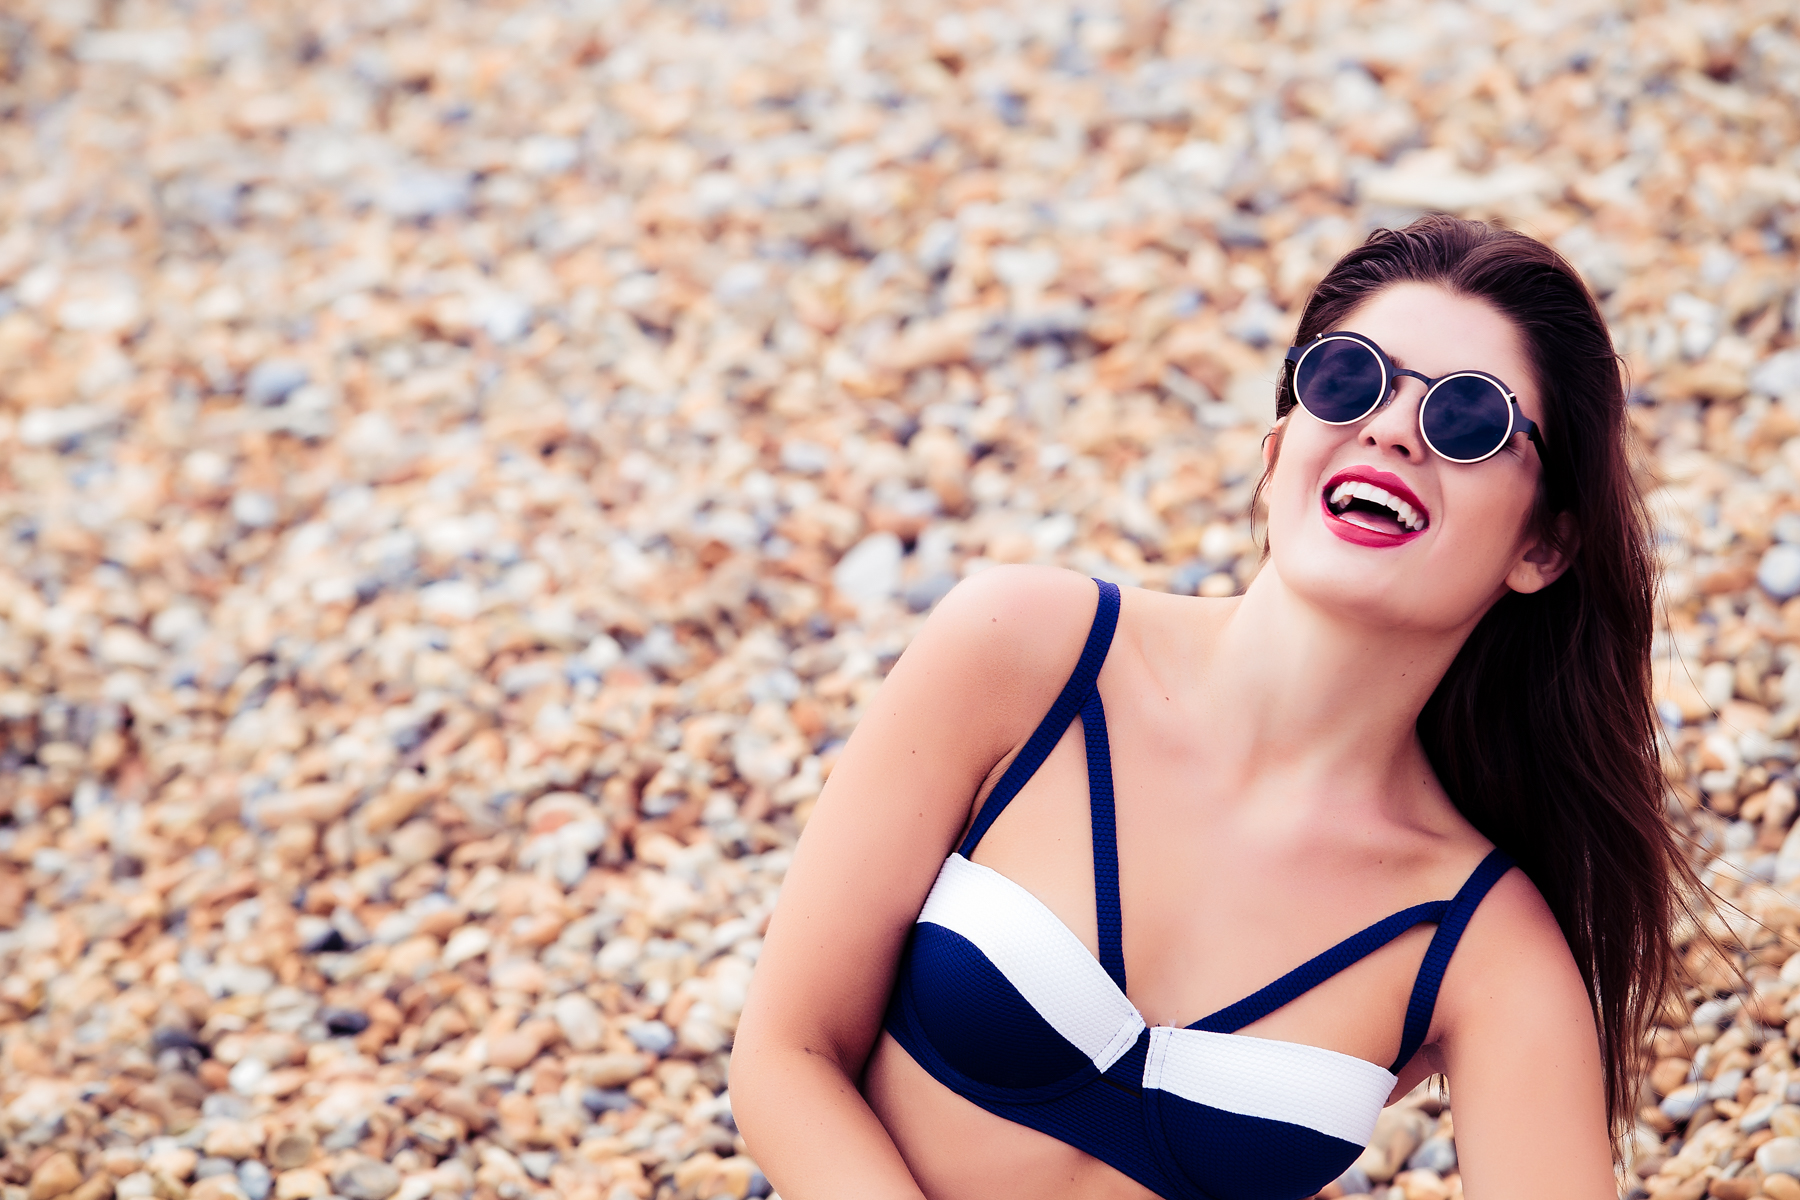 Woman laughing on a beach